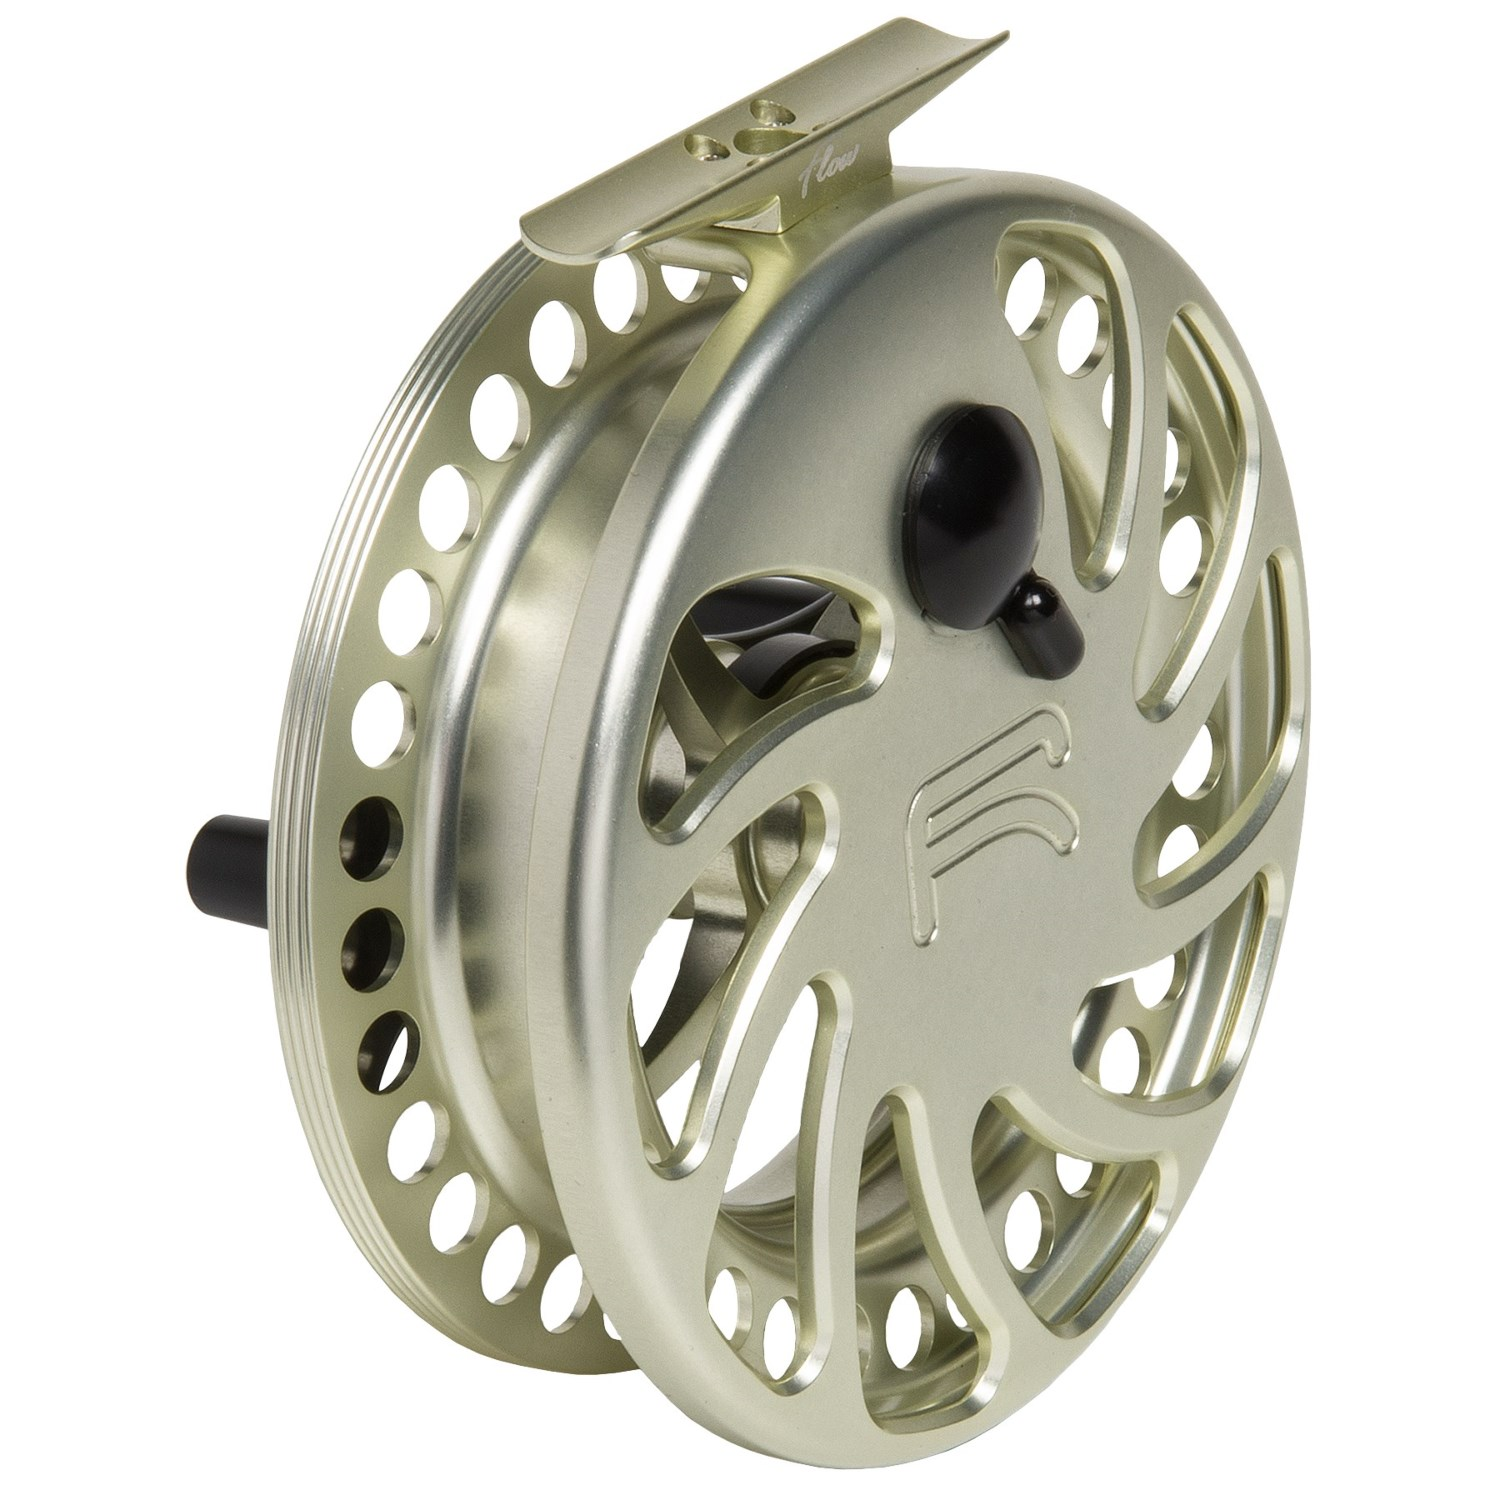 ross reels flow 4 5 centerpin fishing reel 8wt 4422v